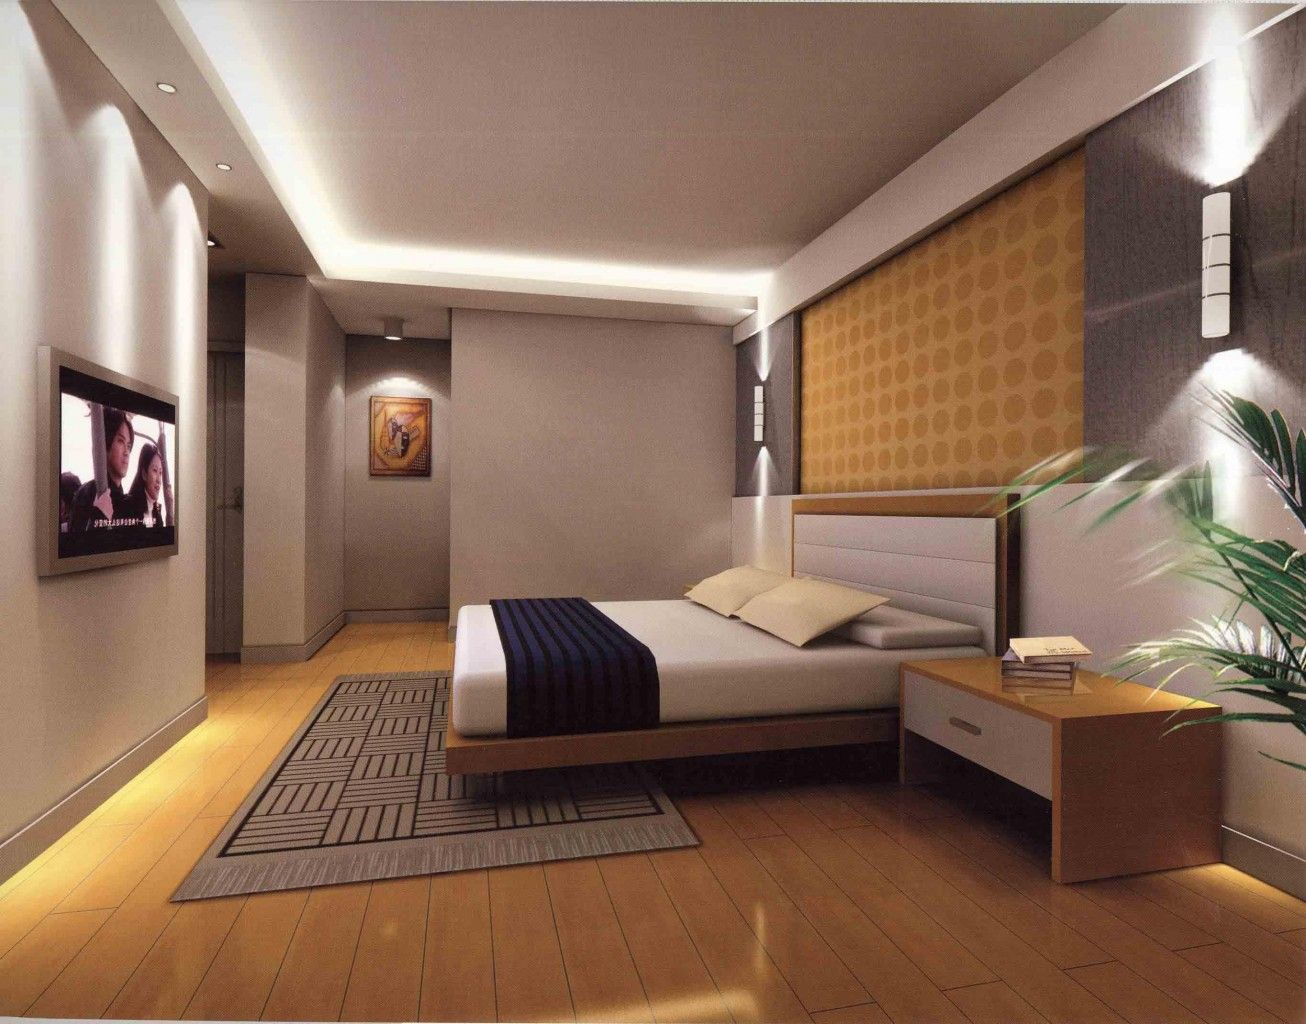 Master bedroom designs ideas - Awesome Master Bedroom Interior Design Ideas With Modern King Size Bed Fur Rug Flat Tv Screen